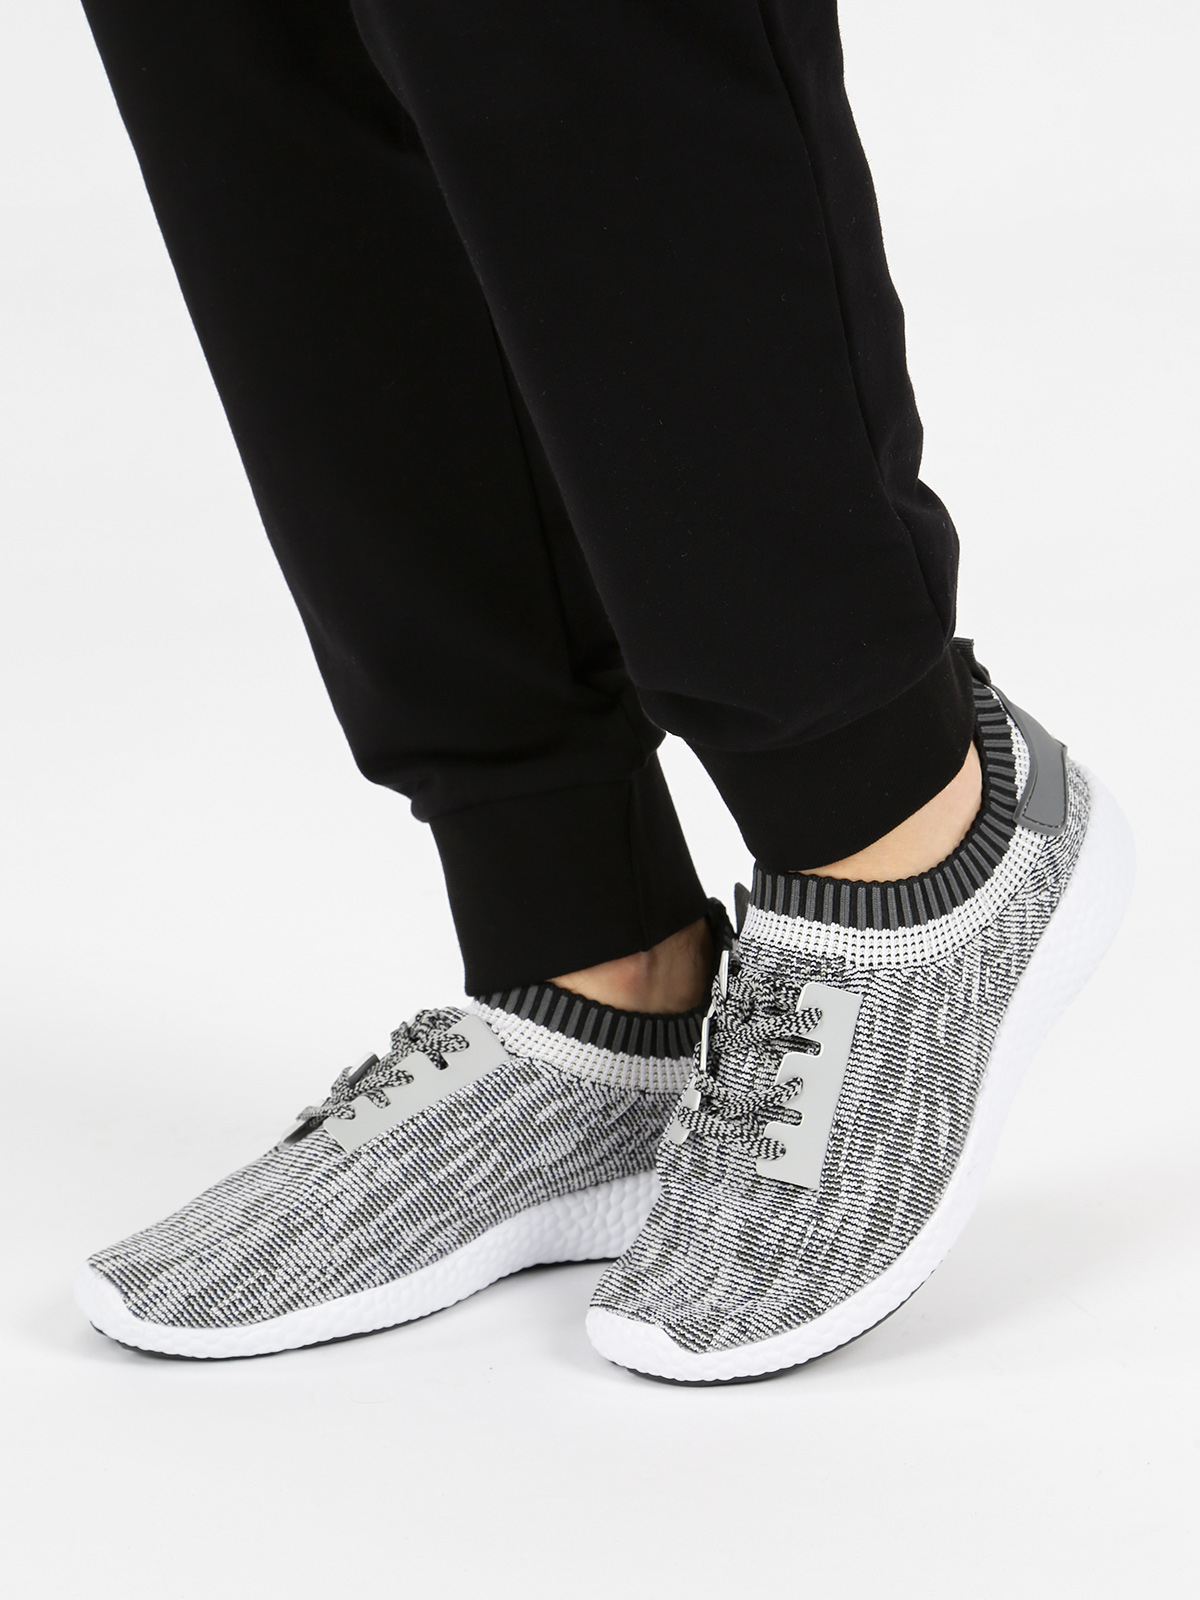 Man's Soft Cosy Soft Surface Shoelace Decoration Slip-ons Sports Running Shoes Casual Shoes